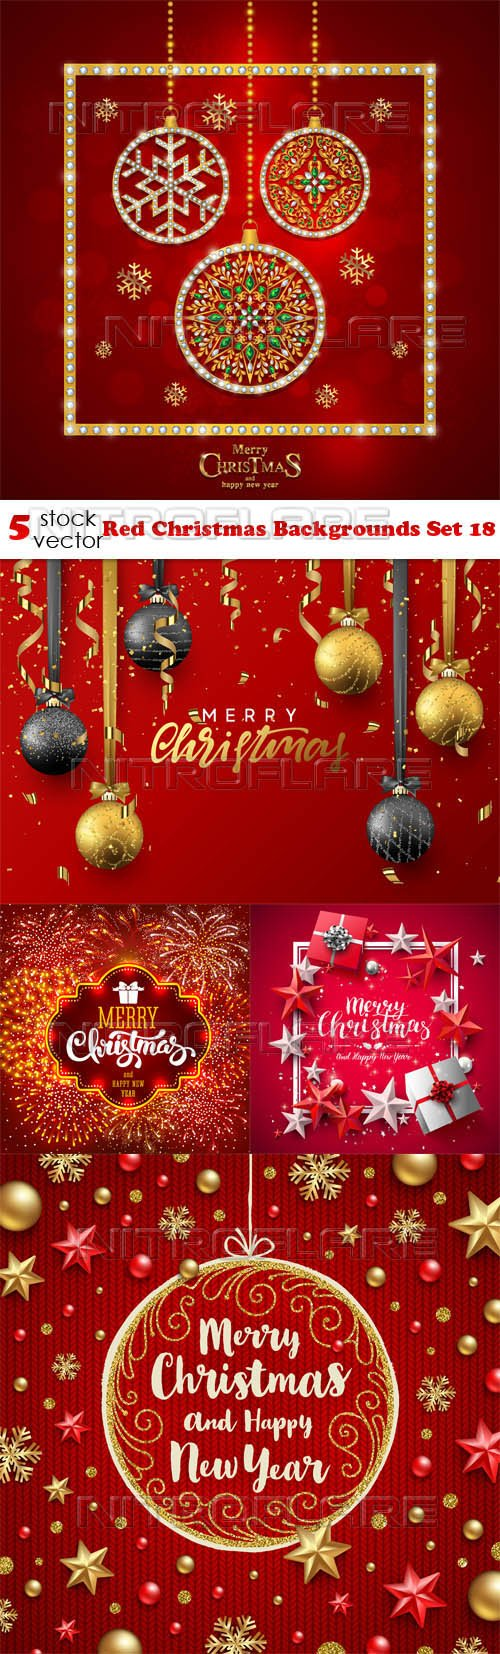 Vectors - Red Christmas Backgrounds Set 18